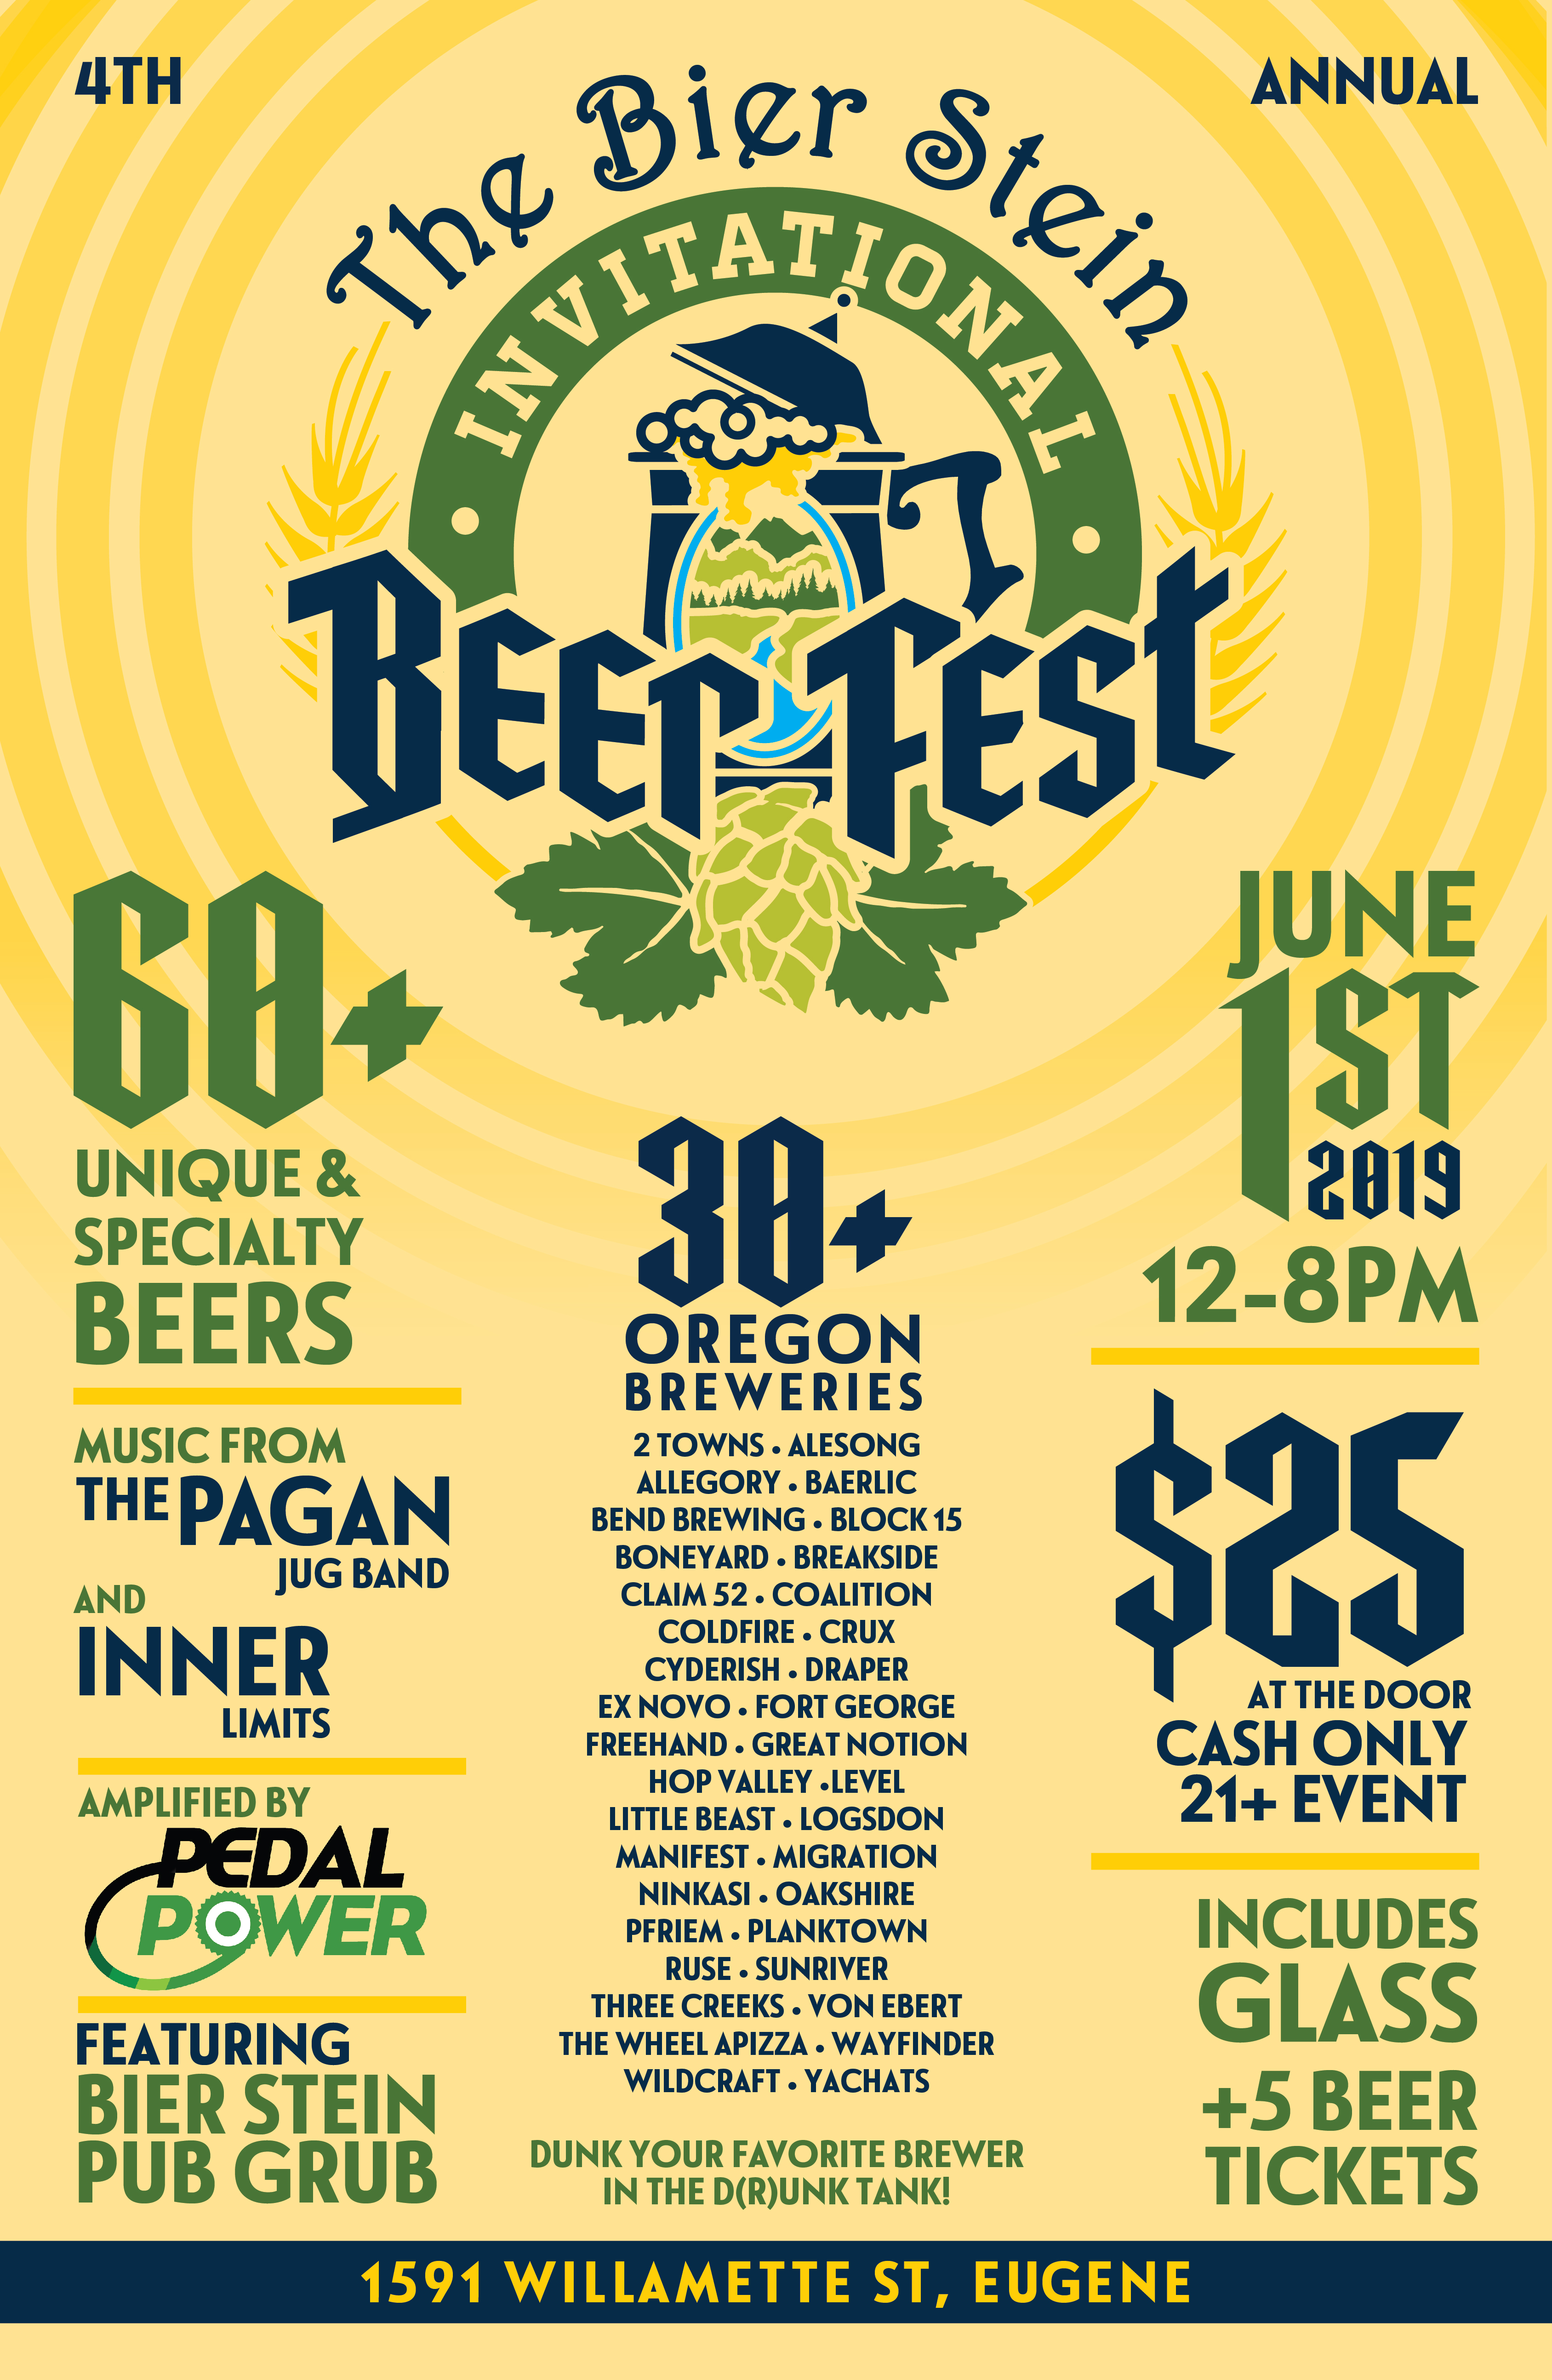 The Bier Stein Invitational Beer Fest - 2019